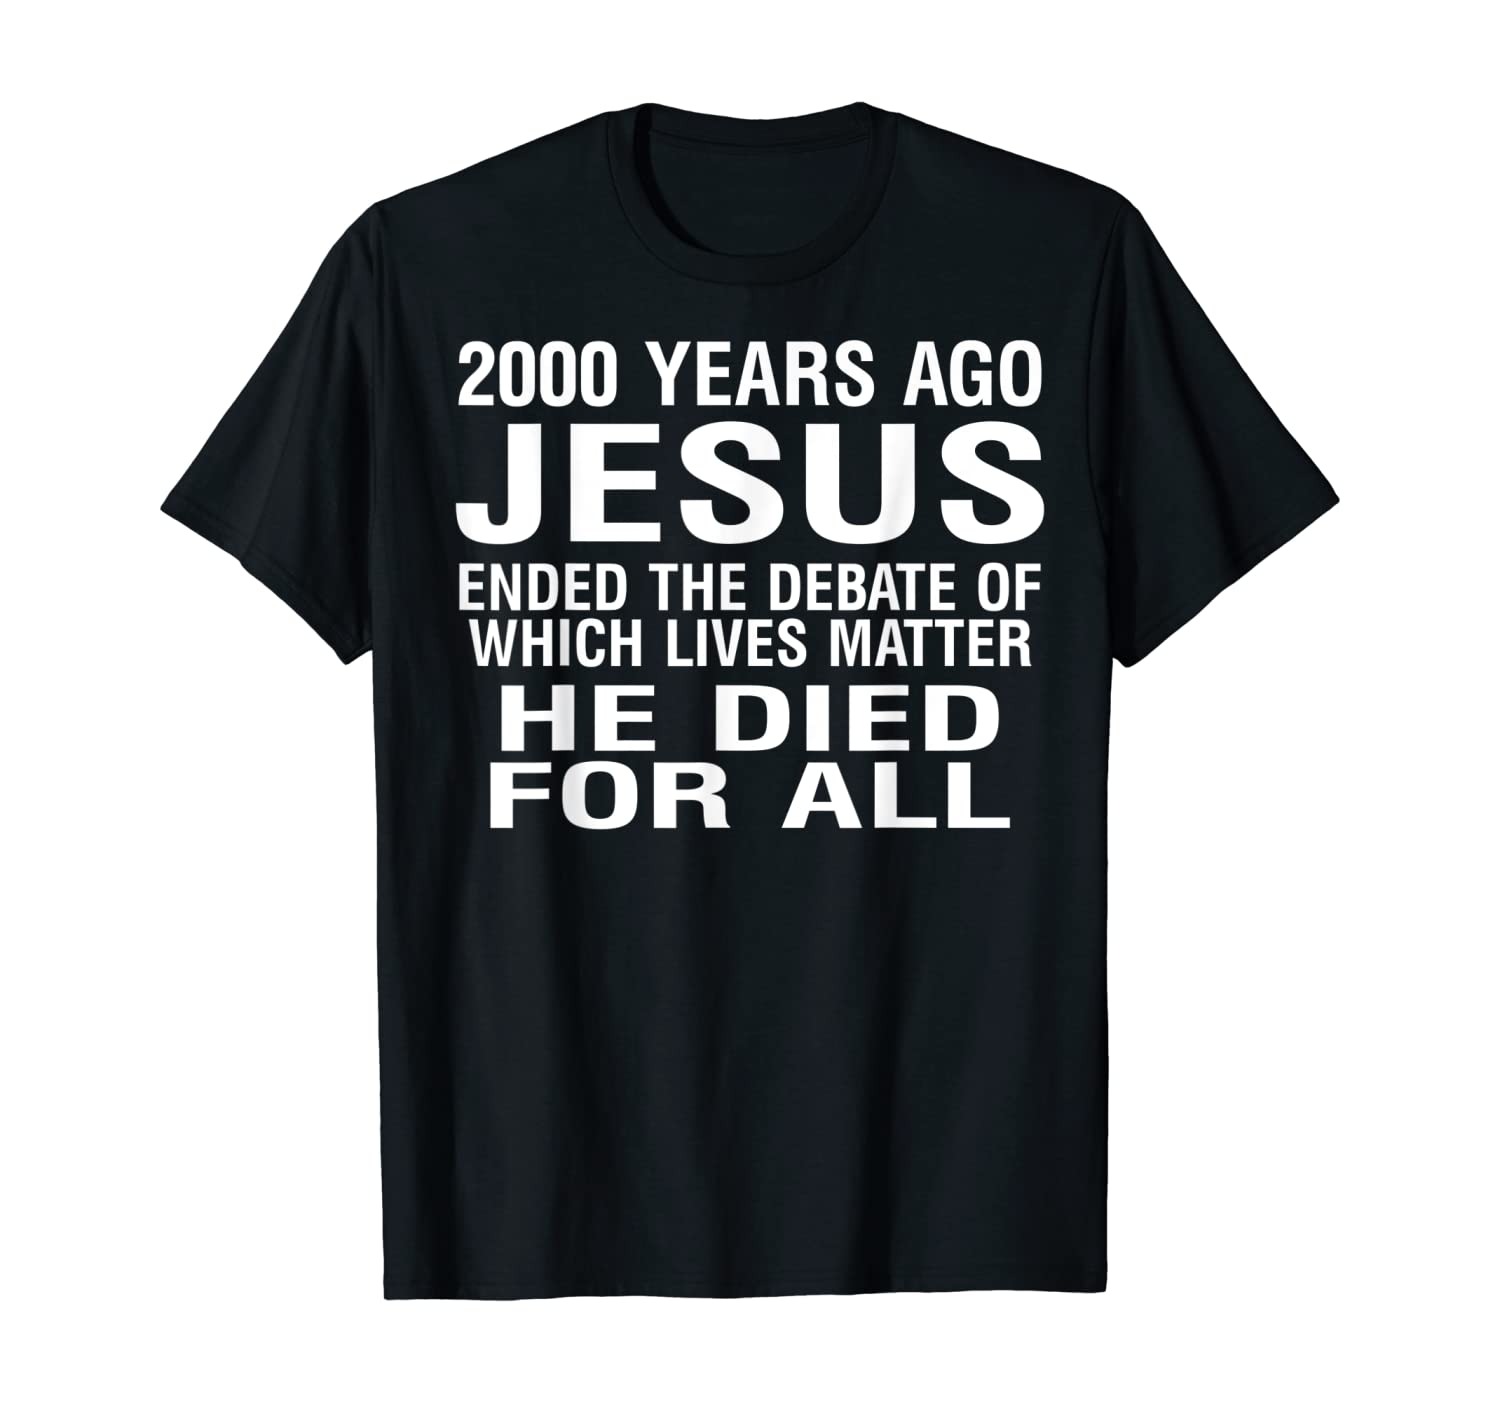 2000 Years Ago Jesus Ended The Debate Of Which Lives Matter T-Shirt